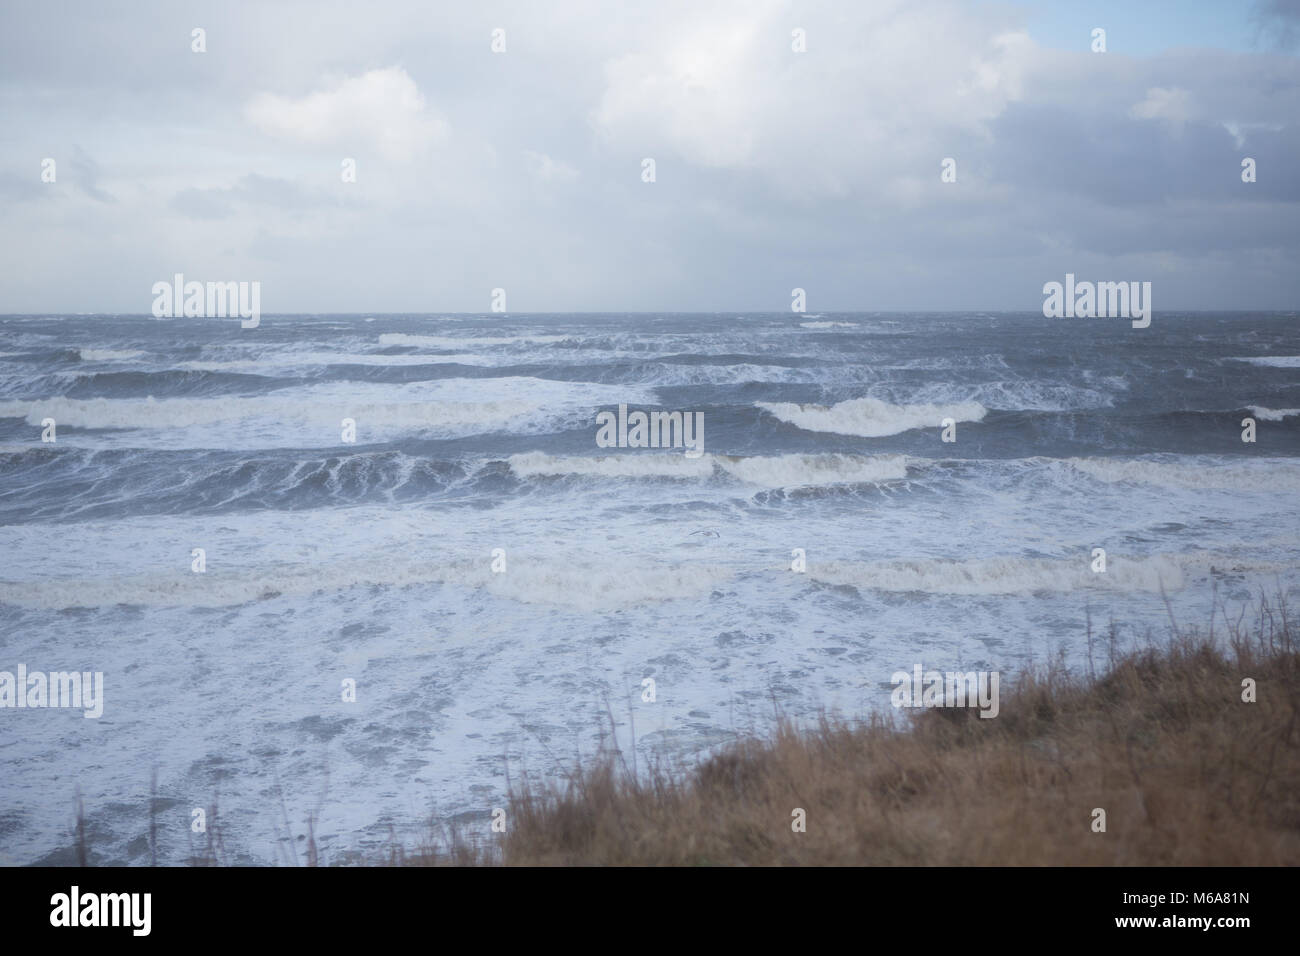 St. Andrews coastline. 1st Mar, 2018. UK Weather: Strong waves batter the coastline of East Sands, St. Andrews during - Stock Image